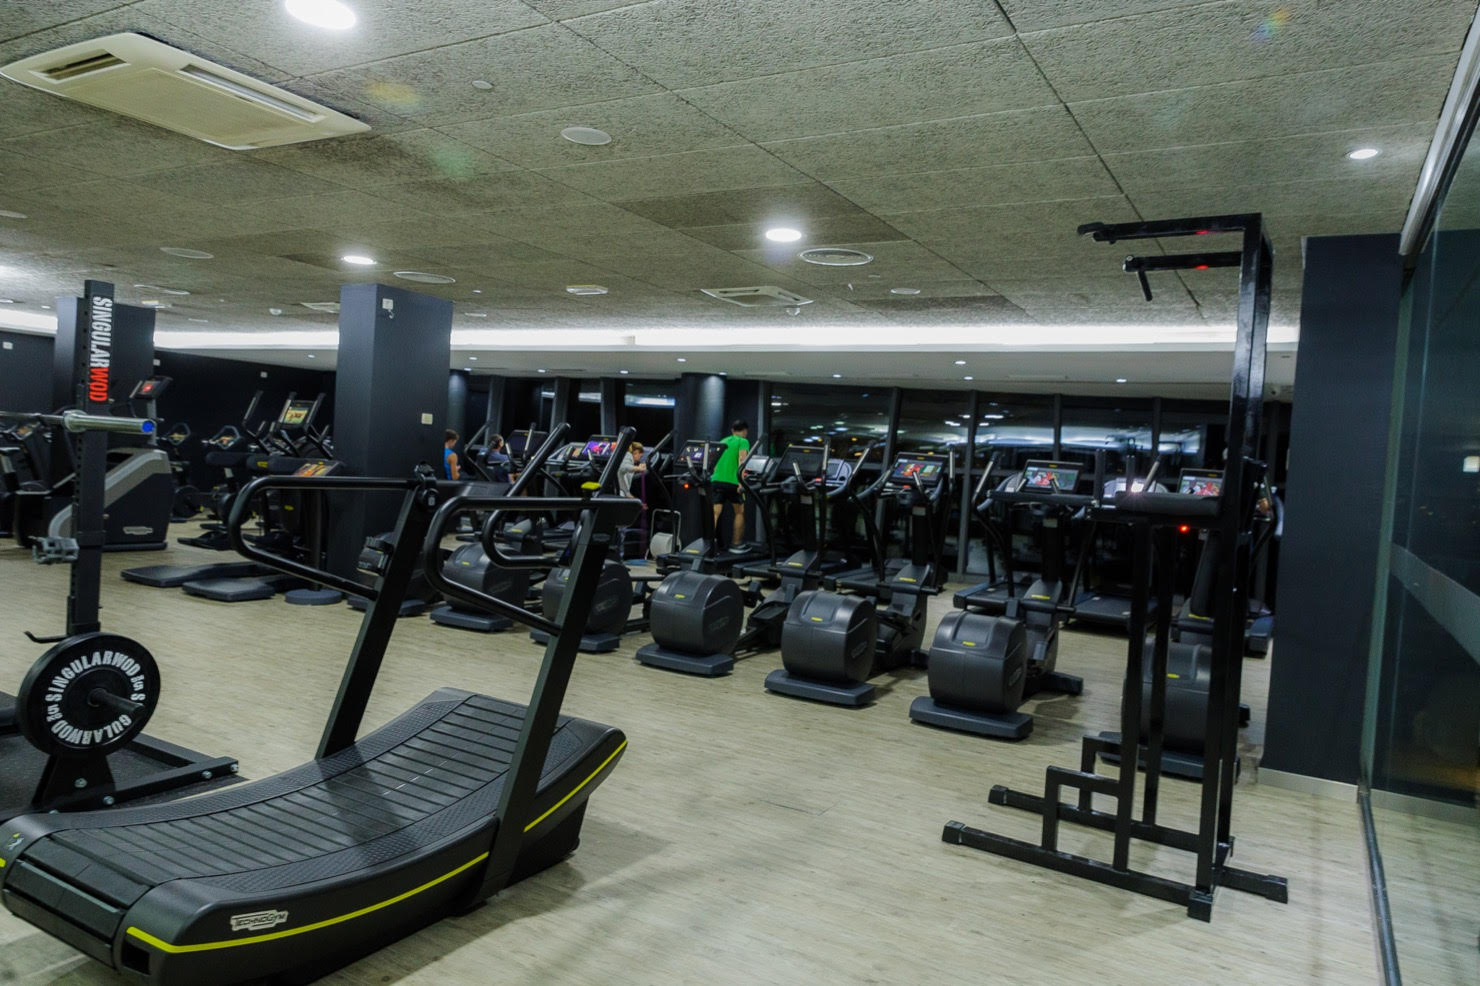 Plaza del Mar Centro Wellness